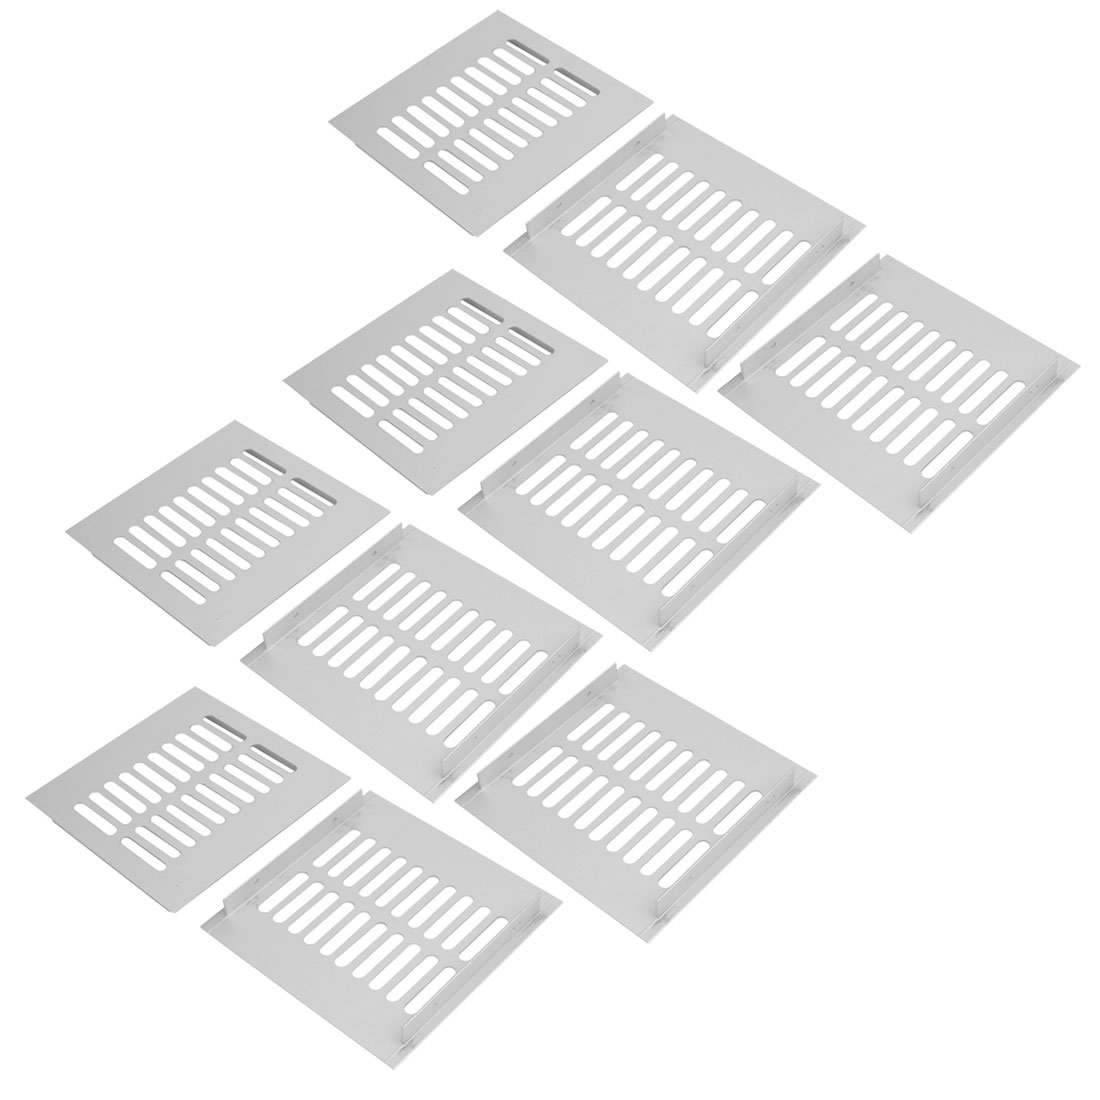 uxcell 10pcs 150mmx150mm Aluminum Alloy Air Vent Louvered Grill Cover Ventilation Grille